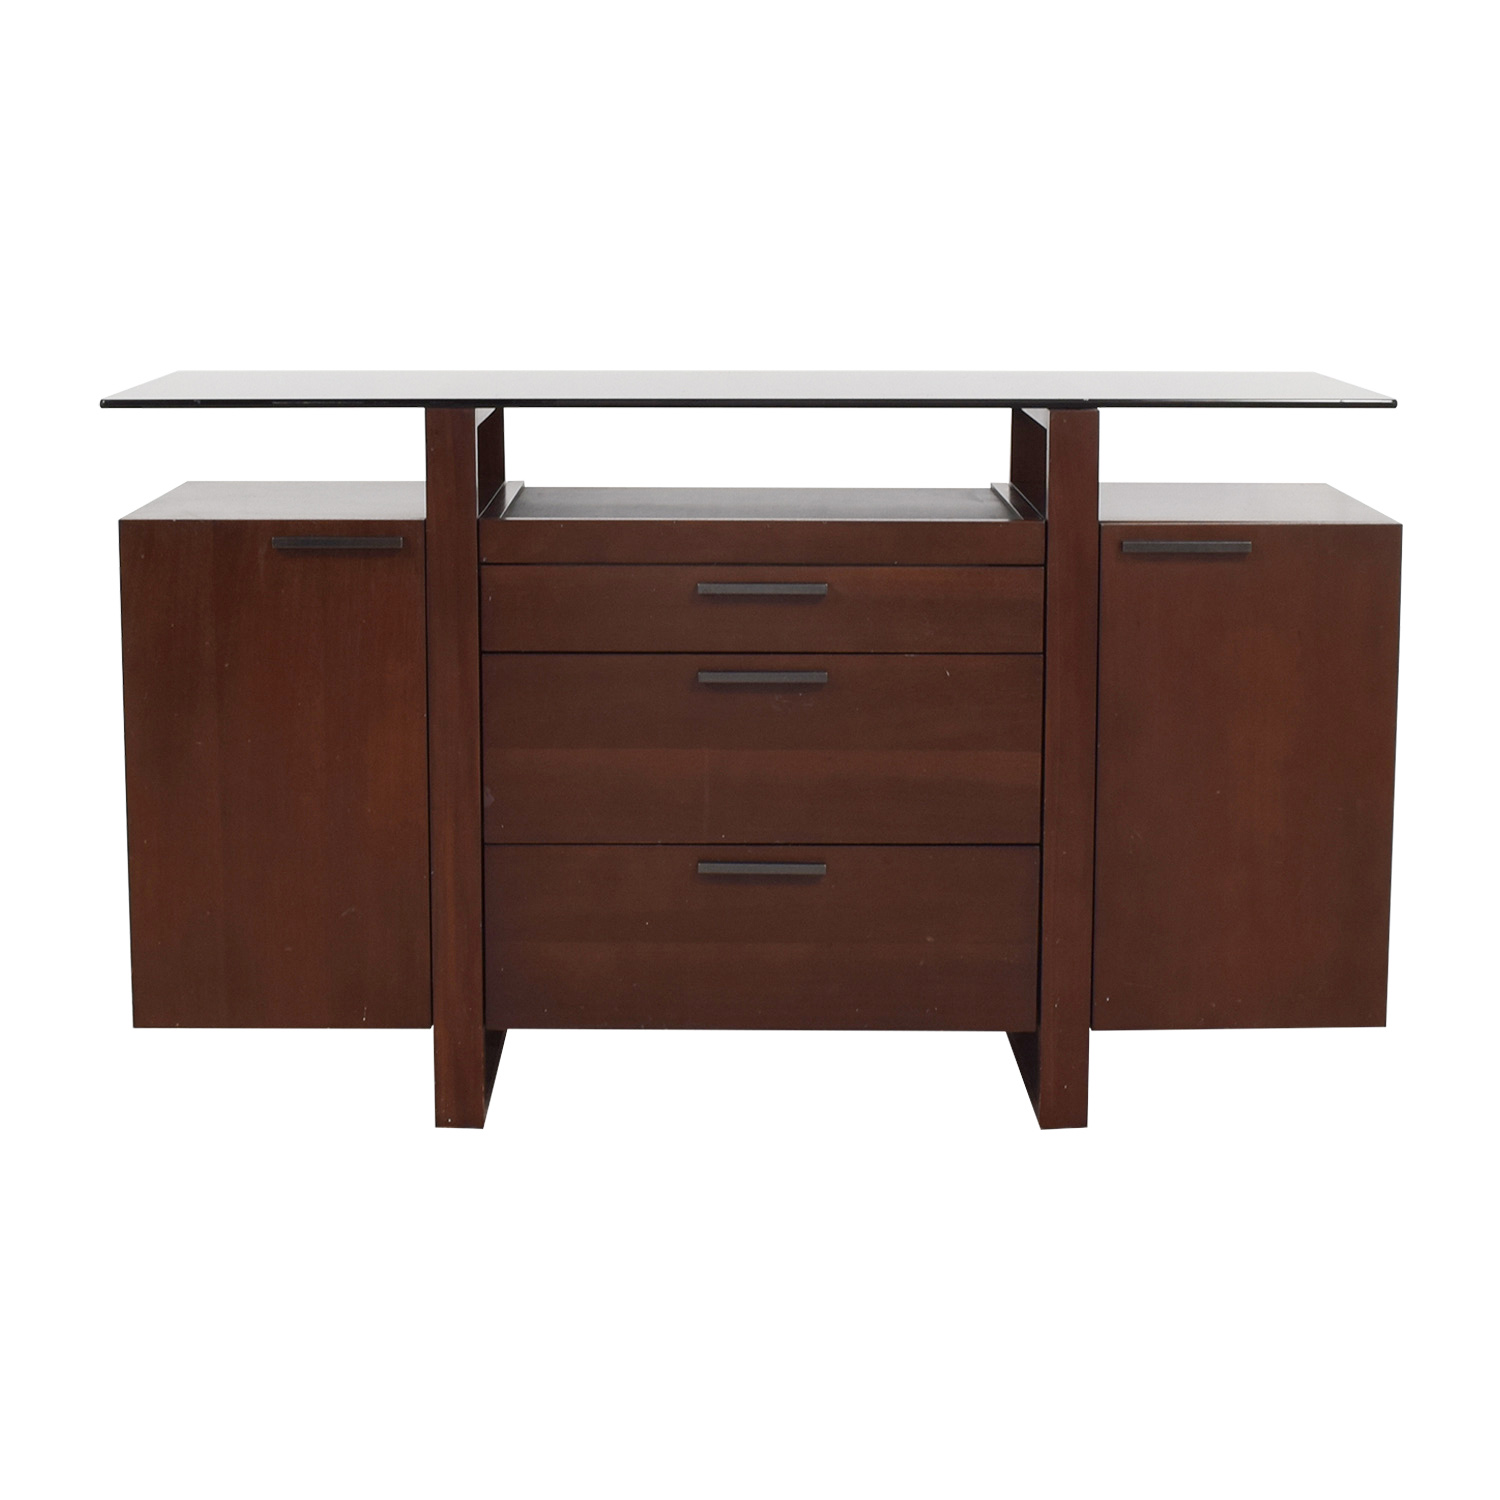 Casana Casana Wood and Smoked Glass Buffet discount